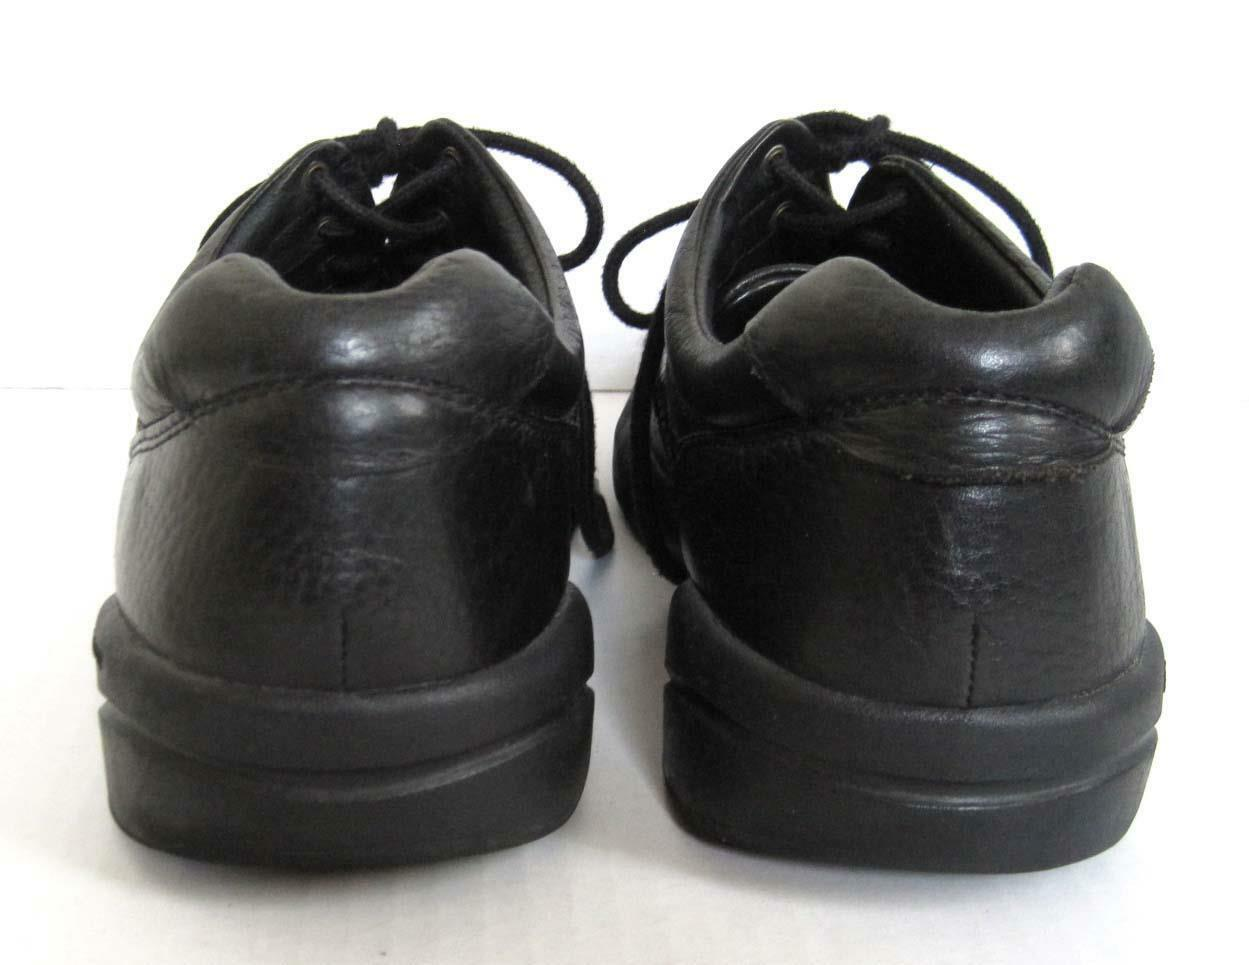 online store 075f1 ac337 ... Kenneth Cole Sneakers Size 8.5 Brown Leather Leather Leather   Navy Suede  Shoes 81d3e8 ...